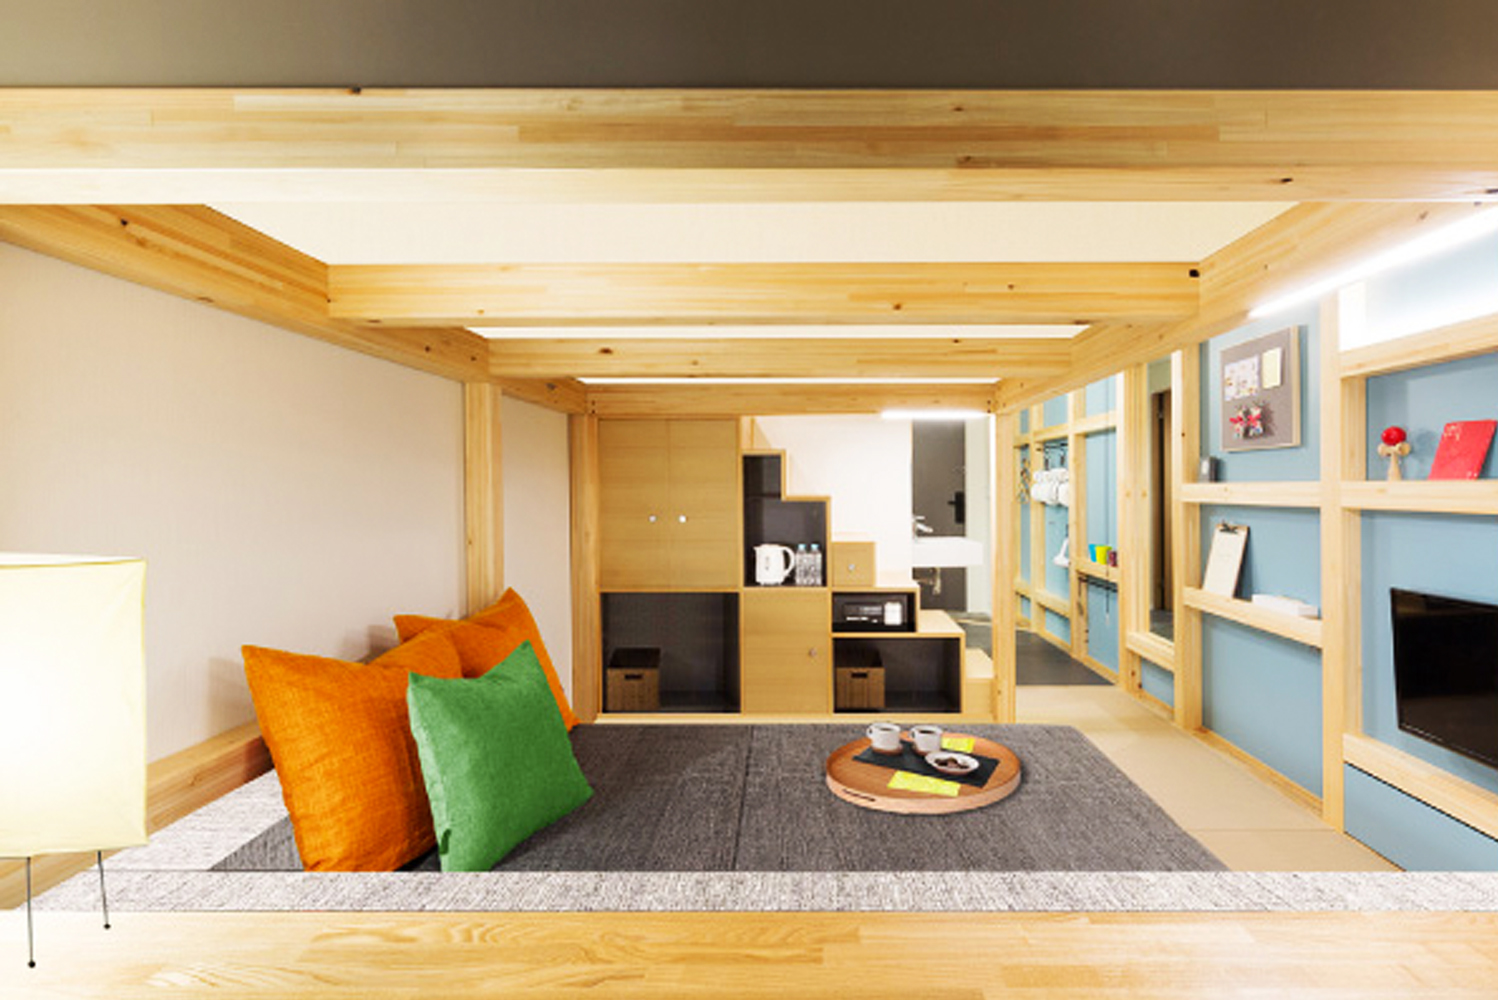 OMO, one of four brands under Hoshino Resorts, launched its second property, OMO5 Tokyo Otsuka.